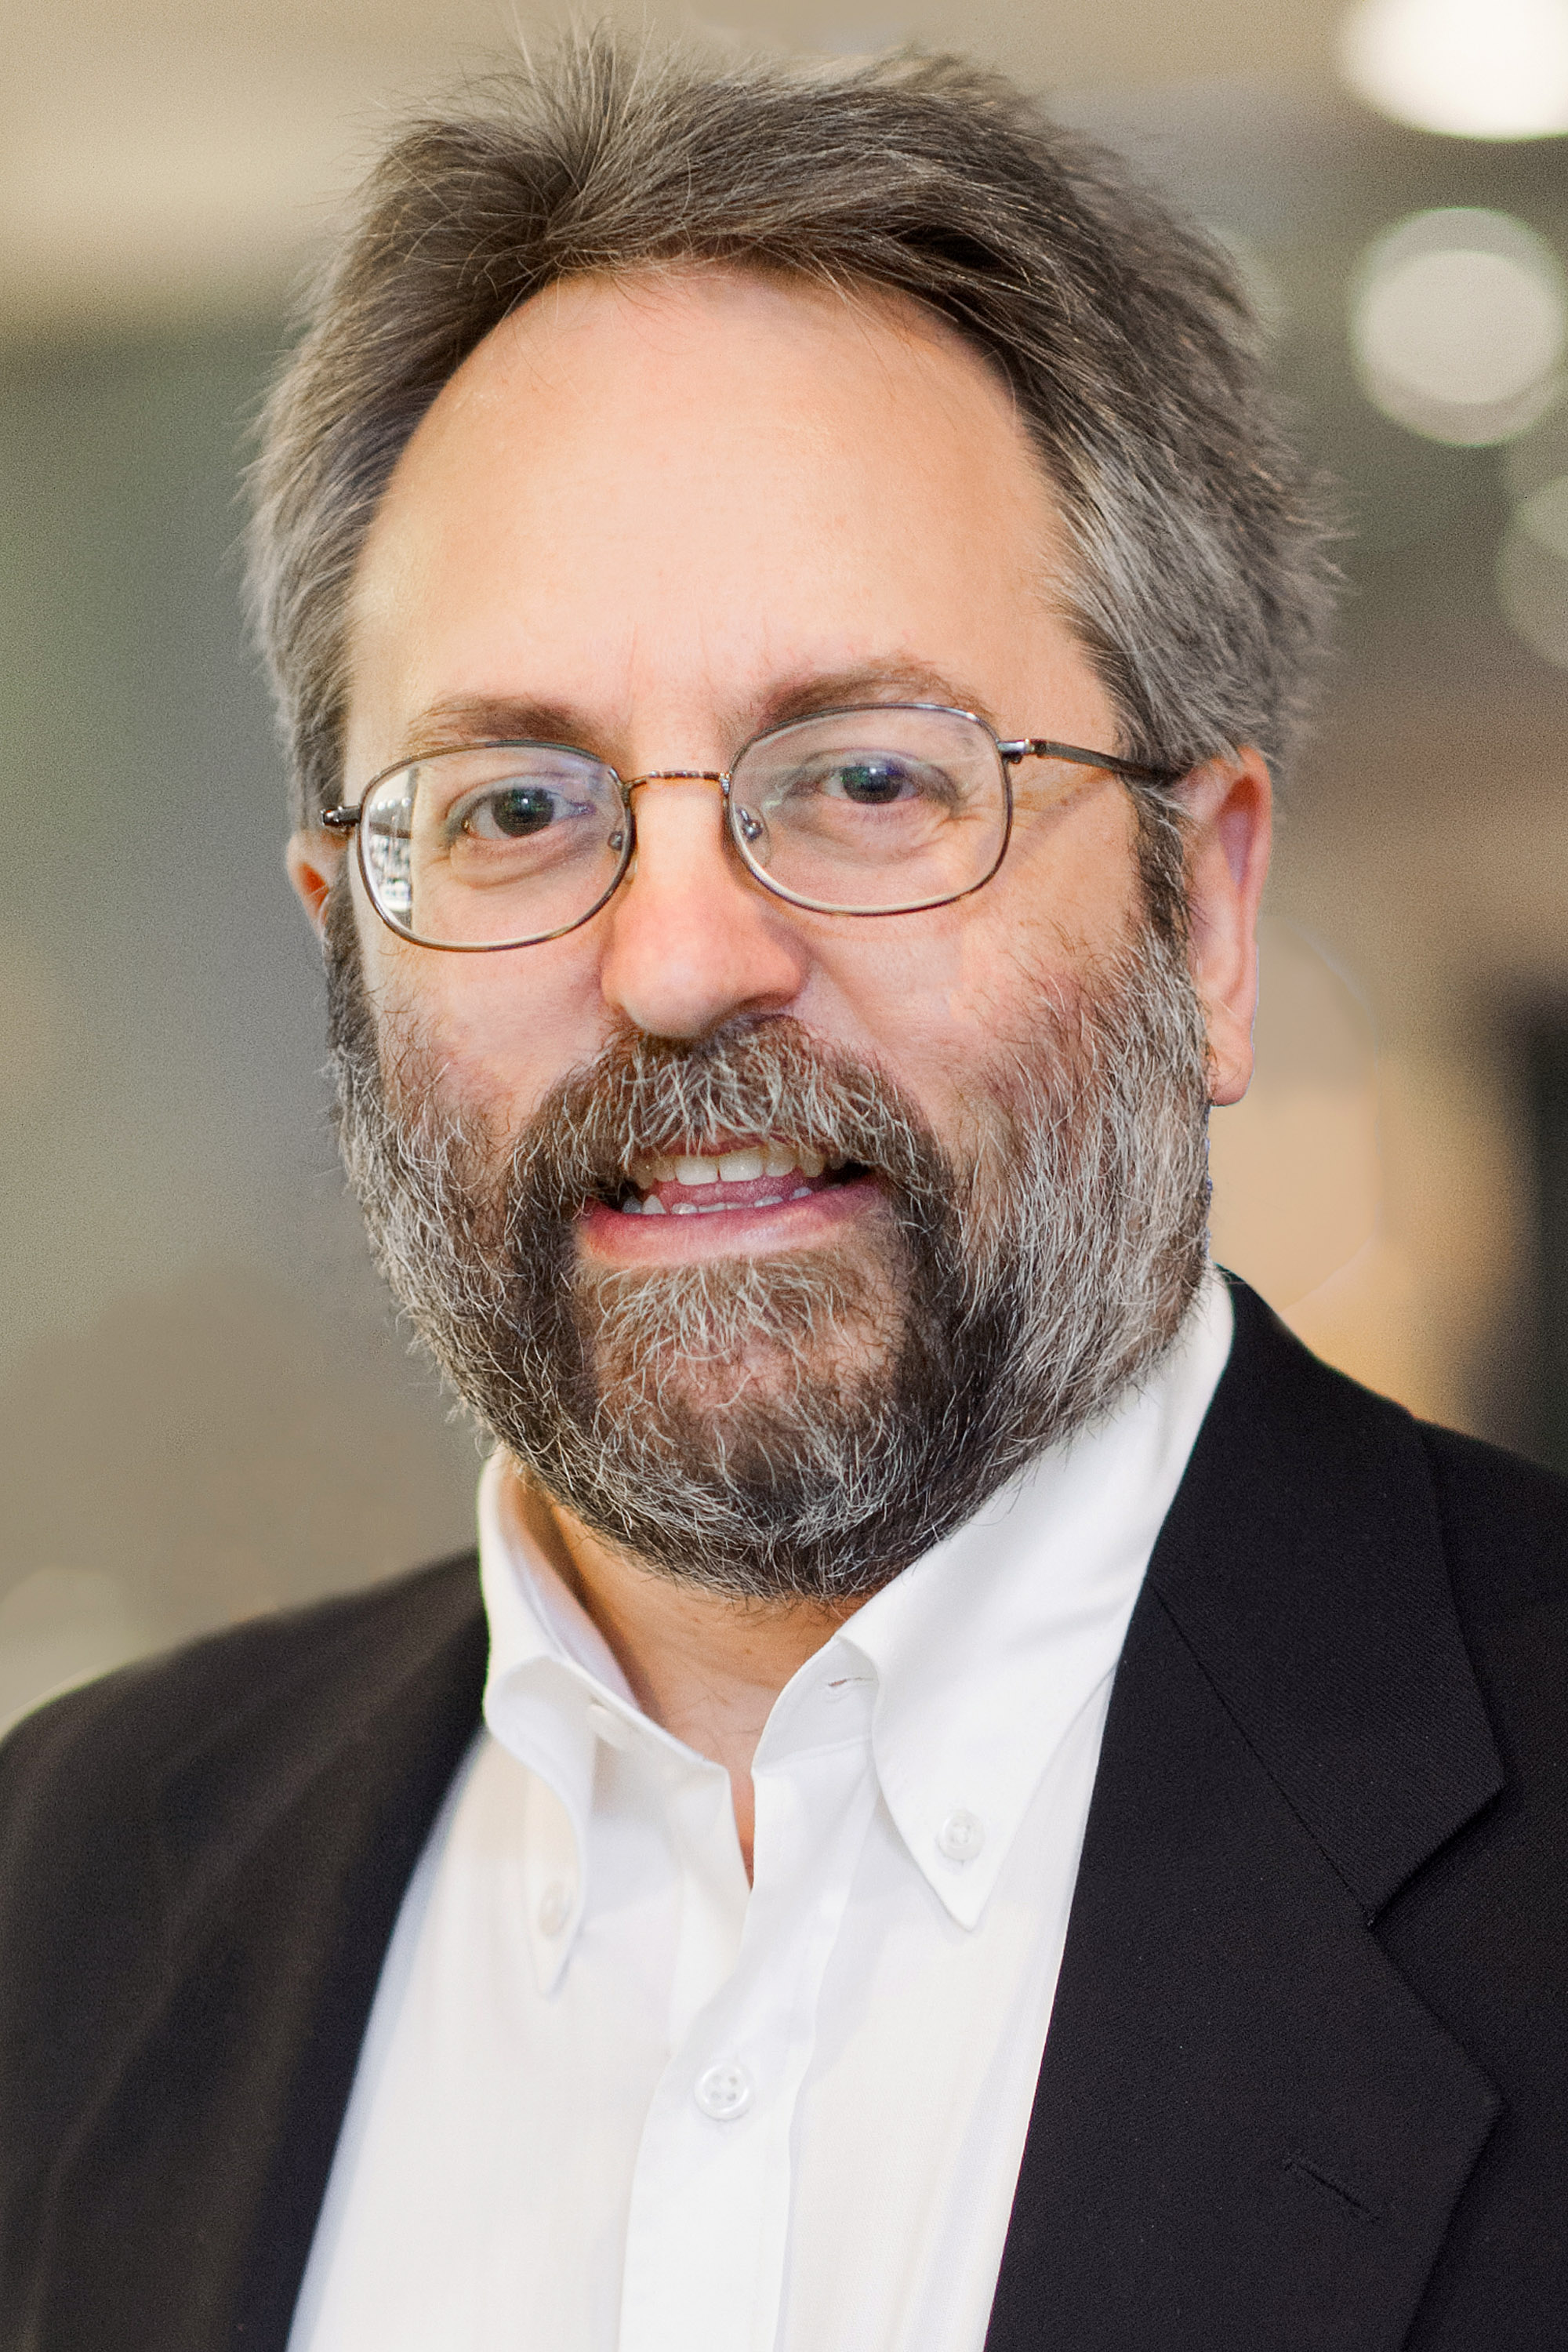 Today's Guest: Jonathan Bernstein - Jonathan Bernstein is a political scientist and a columnist for Bloomberg Opinion, covering politics and policy. He taught political science at the University of Texas at San Antonio and DePauw University. Follow him on Twitter here.